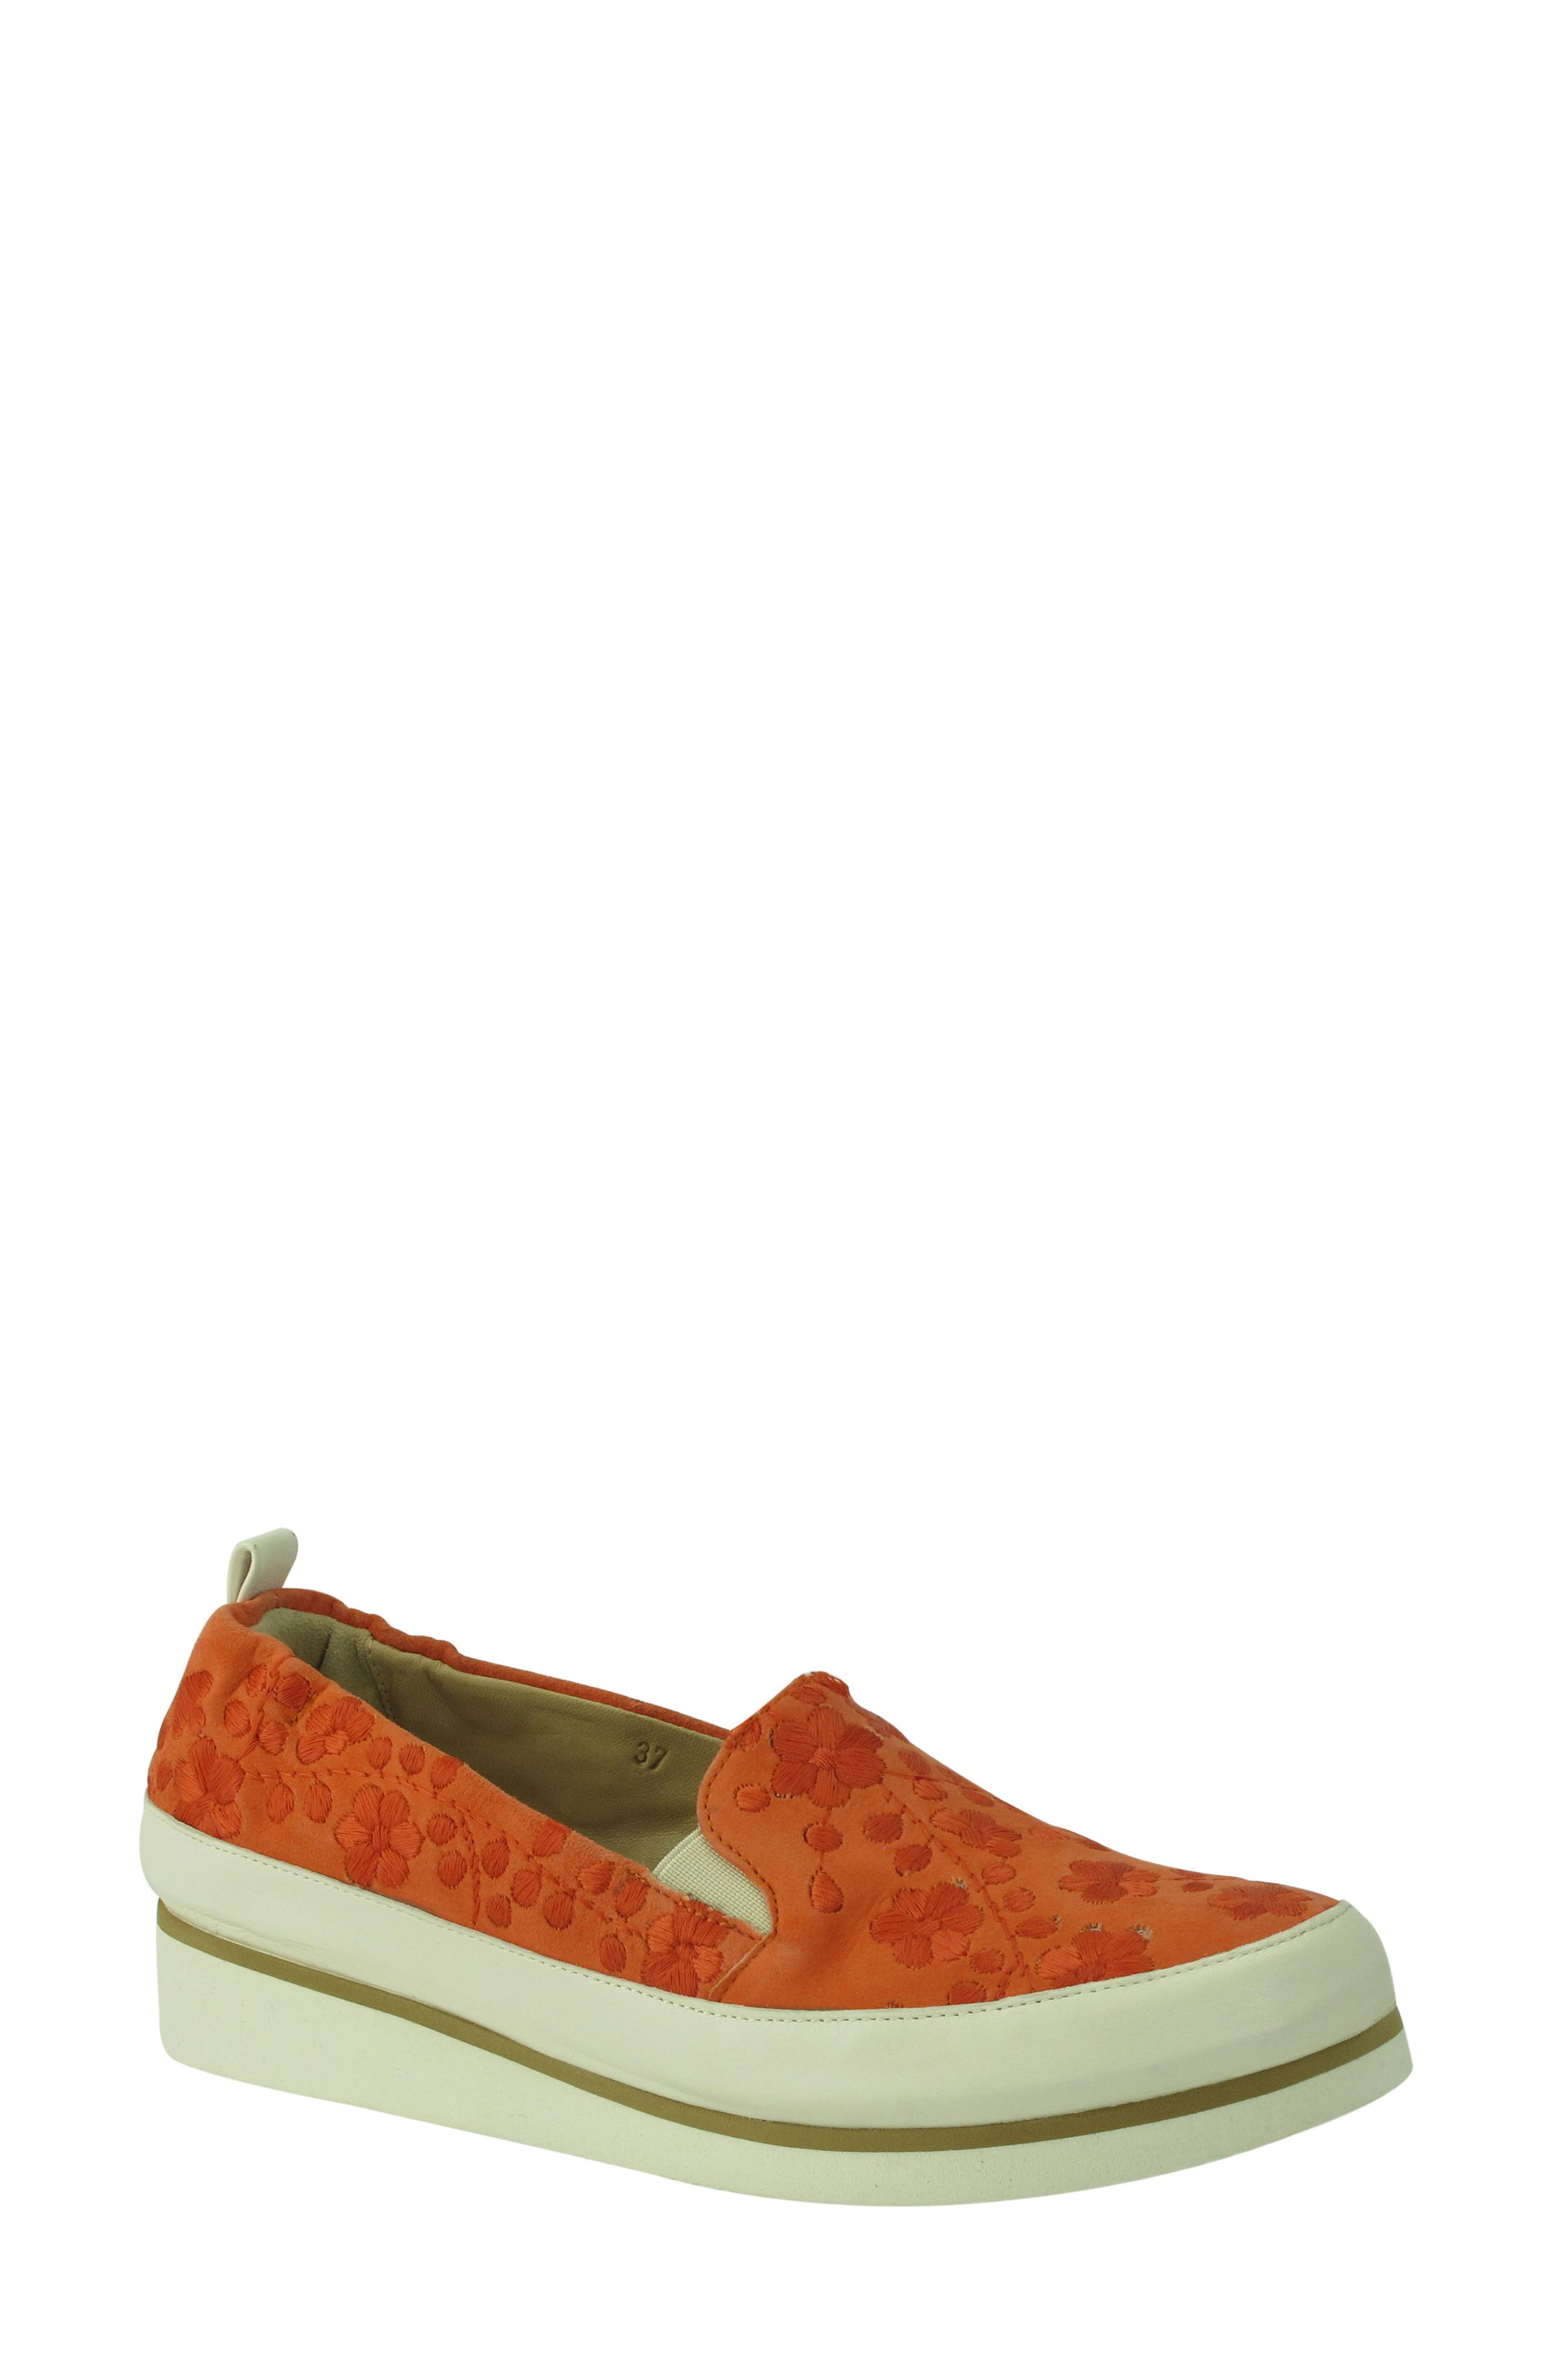 Nell Slip-On Sneaker,                             Main thumbnail 4, color,